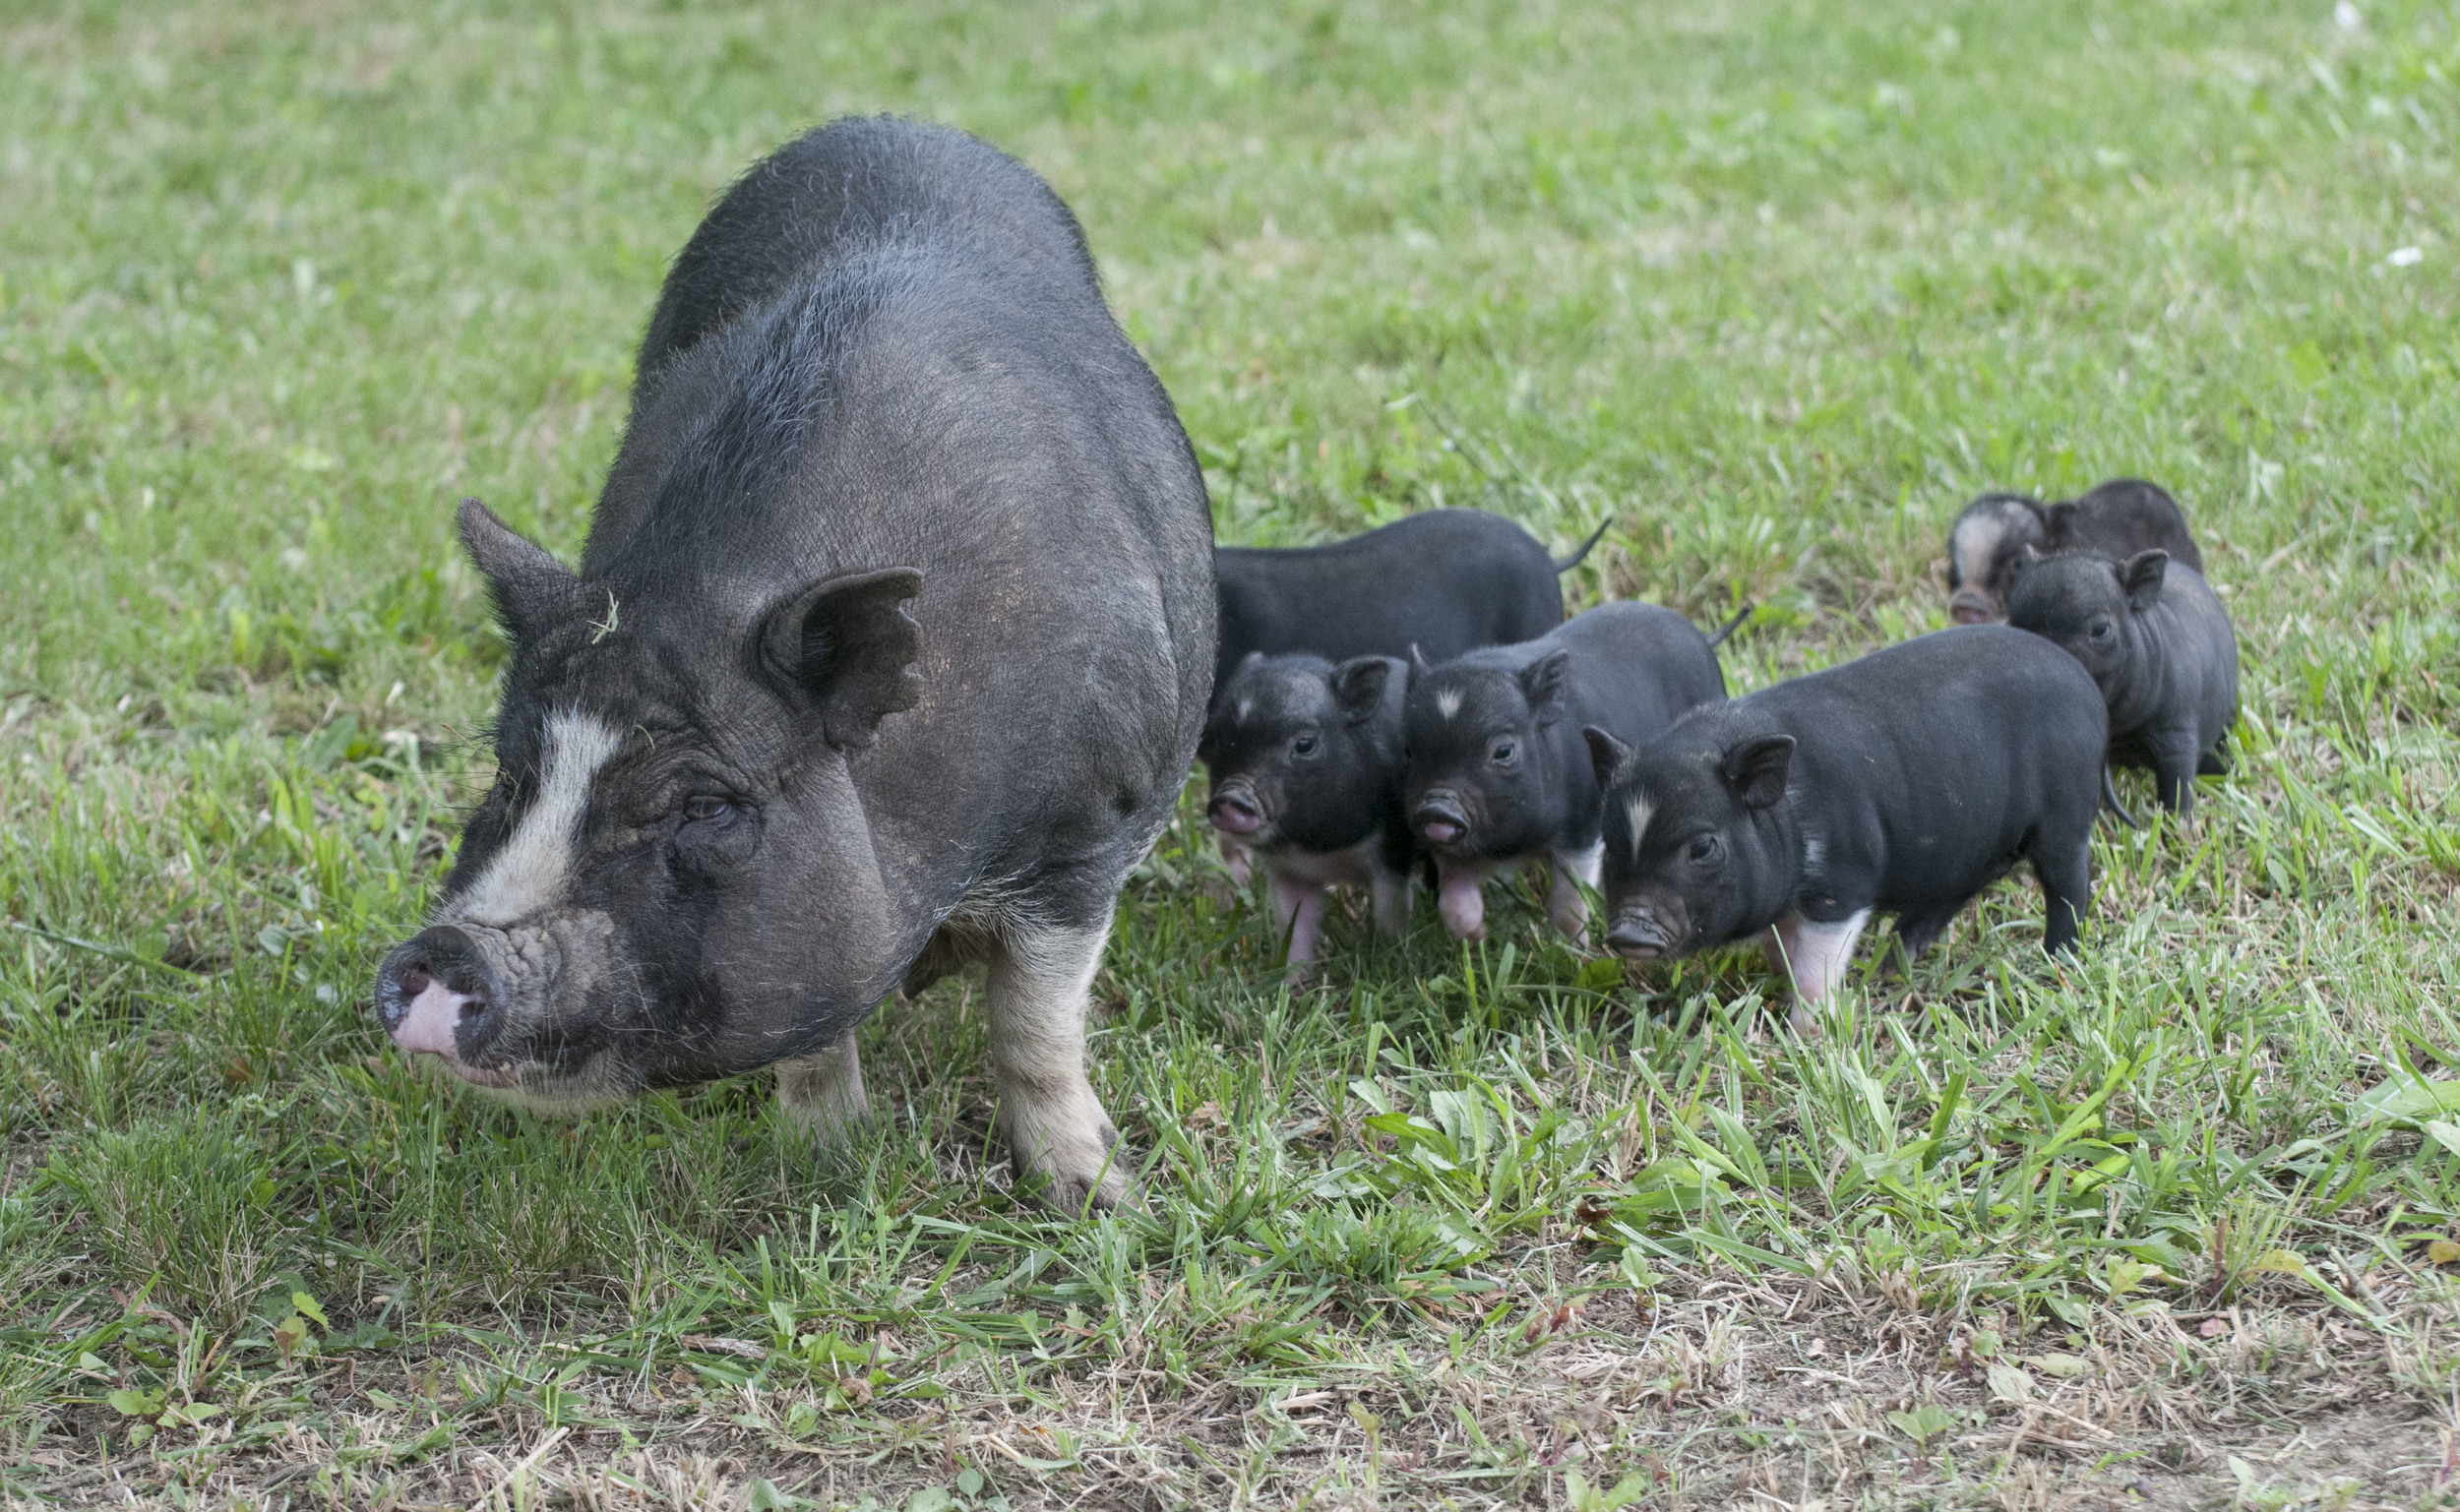 Momma potbelly pig and piglets